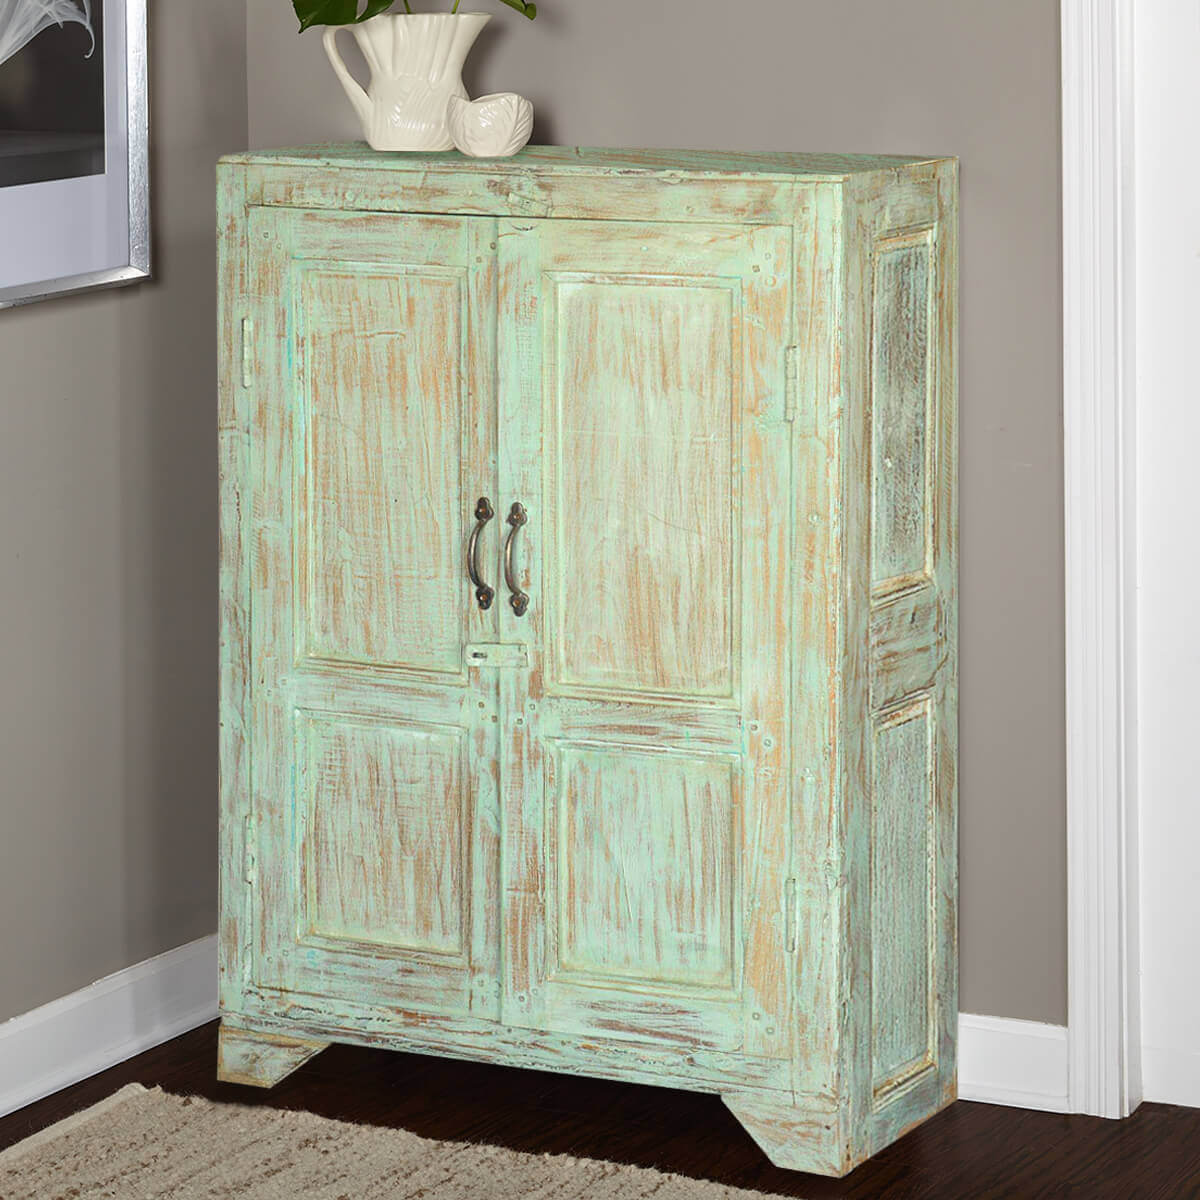 Julian rustic reclaimed wood storage cabinet door small